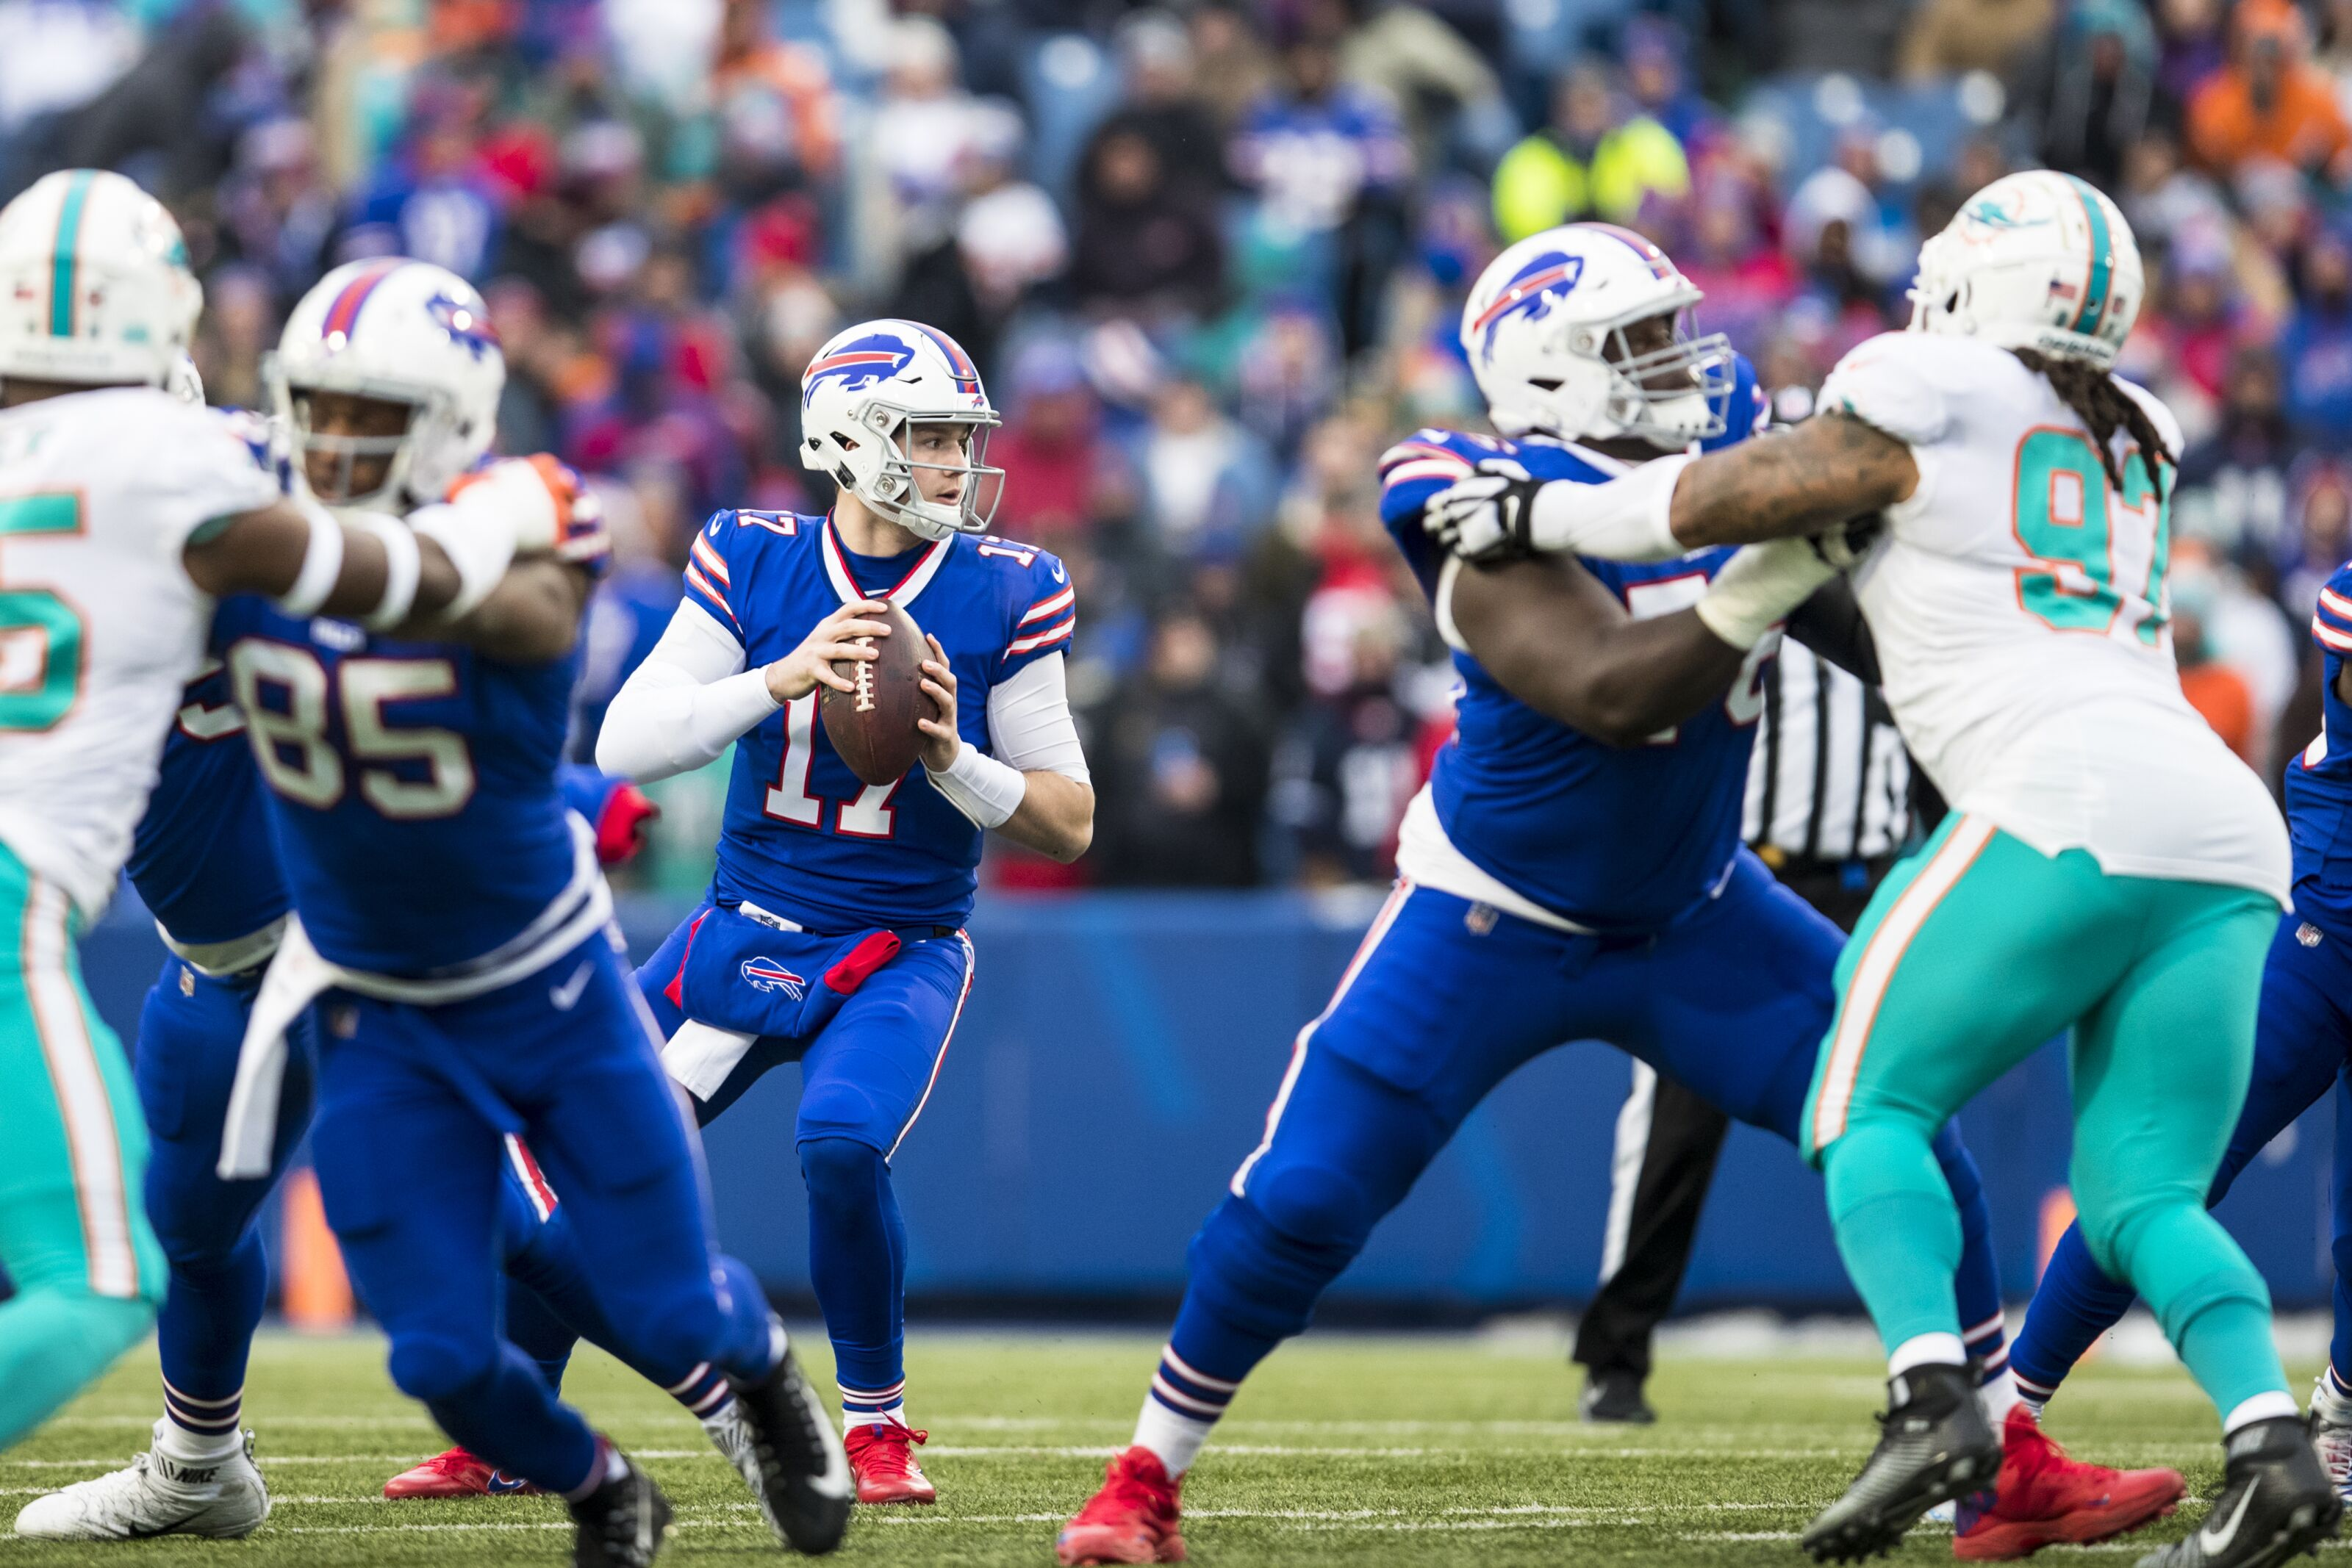 Buffalo Bills vs Miami Game 6 – Time, TV, Weather, More